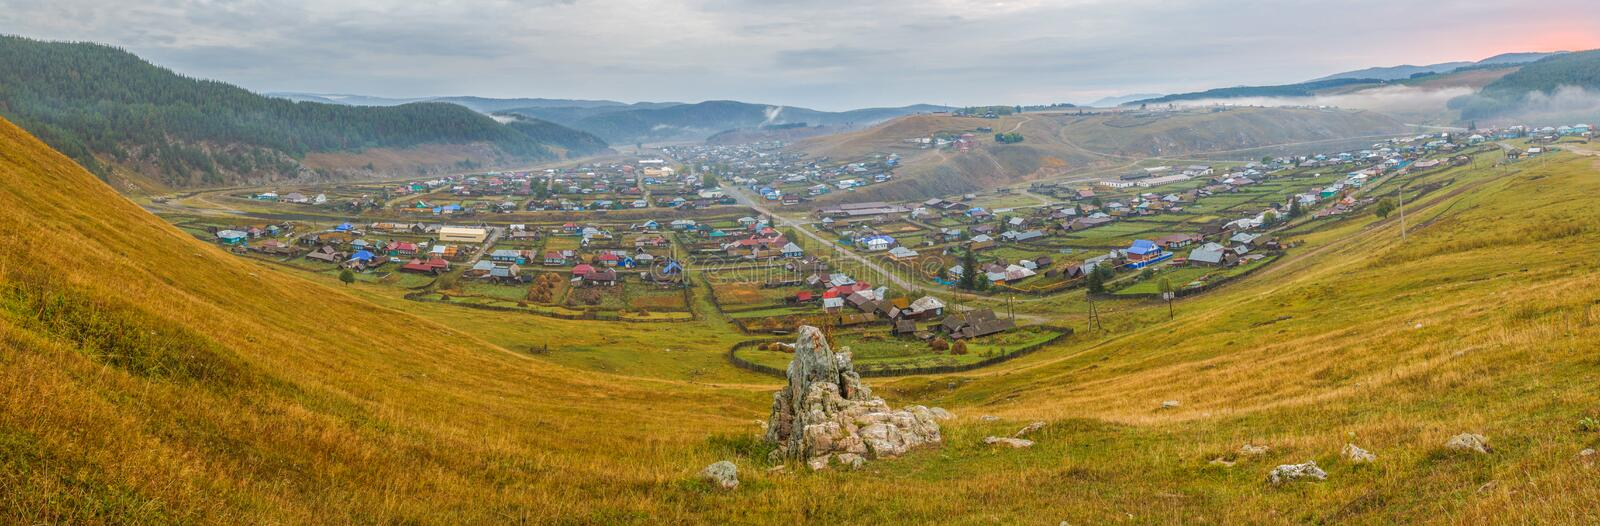 Ural village in the mountains. Kaga. Bashkortostan. Picturesque Ural valley. The village in the mountains. Kaga. Bashkortostan royalty free stock photography